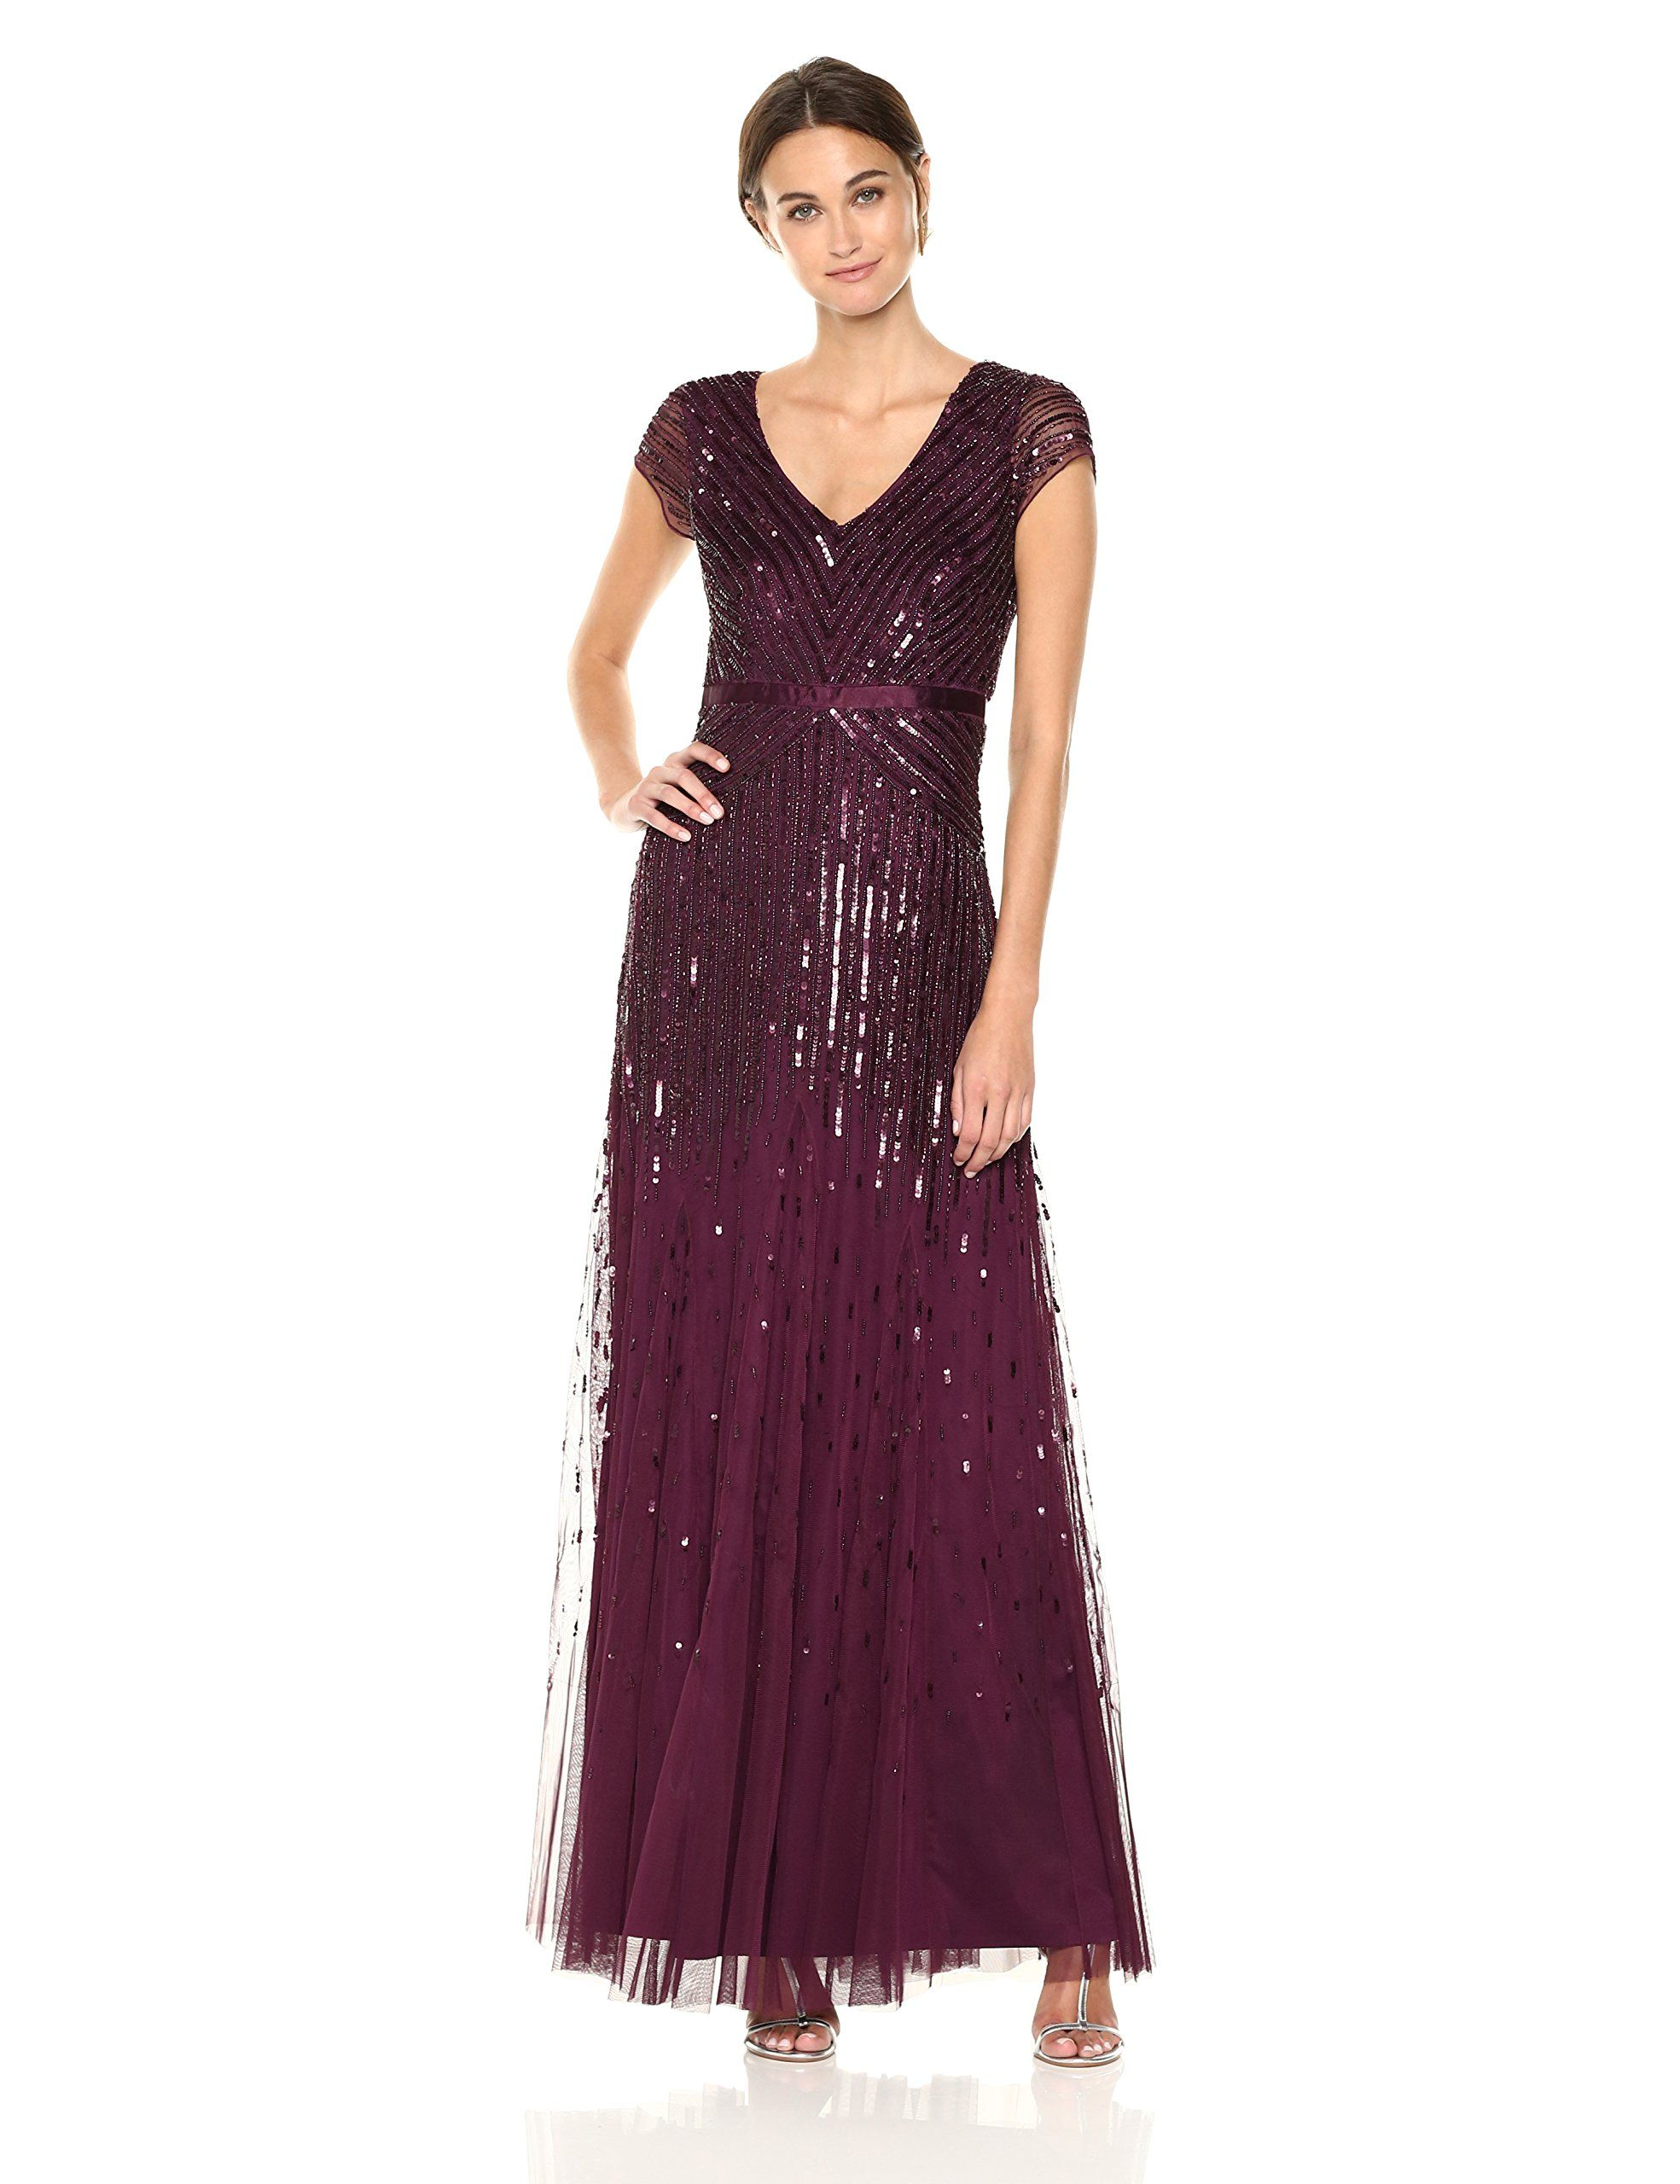 Beaded V-Neck Gown by Adrianna Papell - Blush - Mothers Only